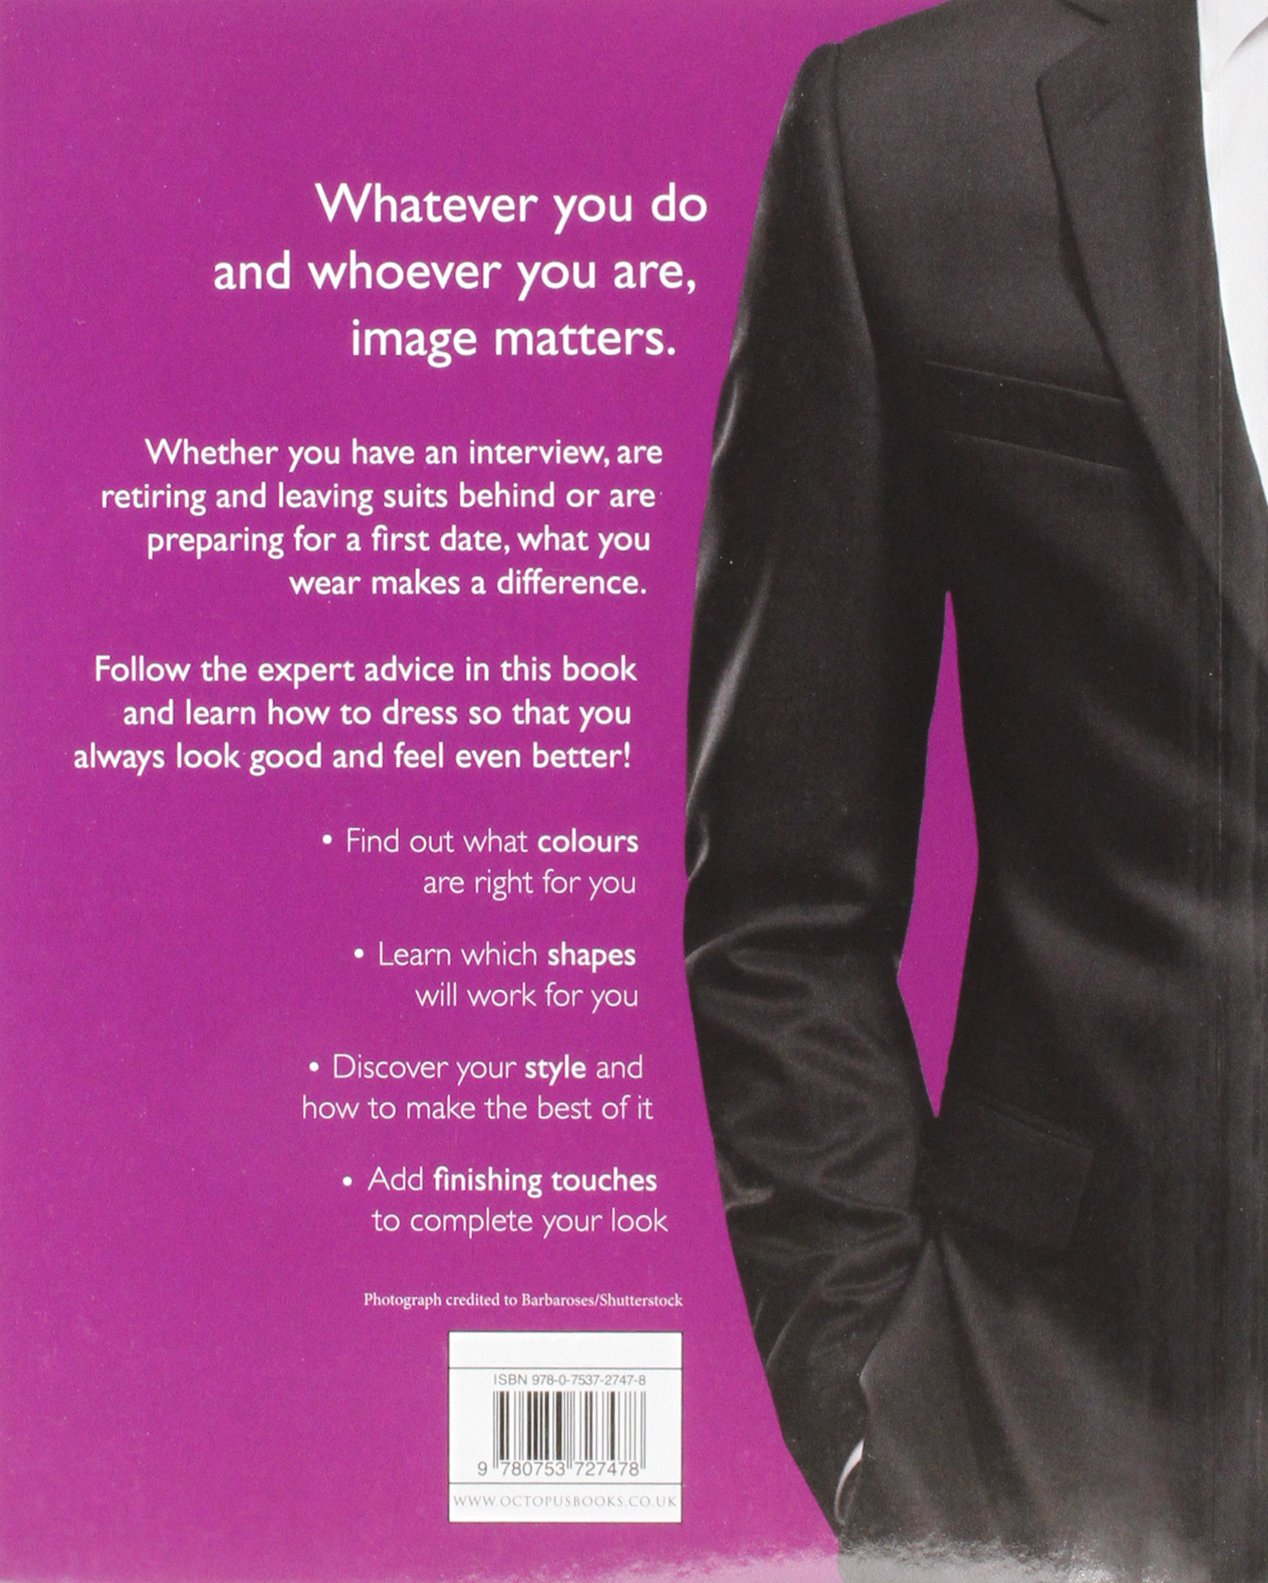 colour me beautiful image matters for men how to dress for colour me beautiful image matters for men how to dress for success veronique henderson pat henshaw 9780753727478 com books